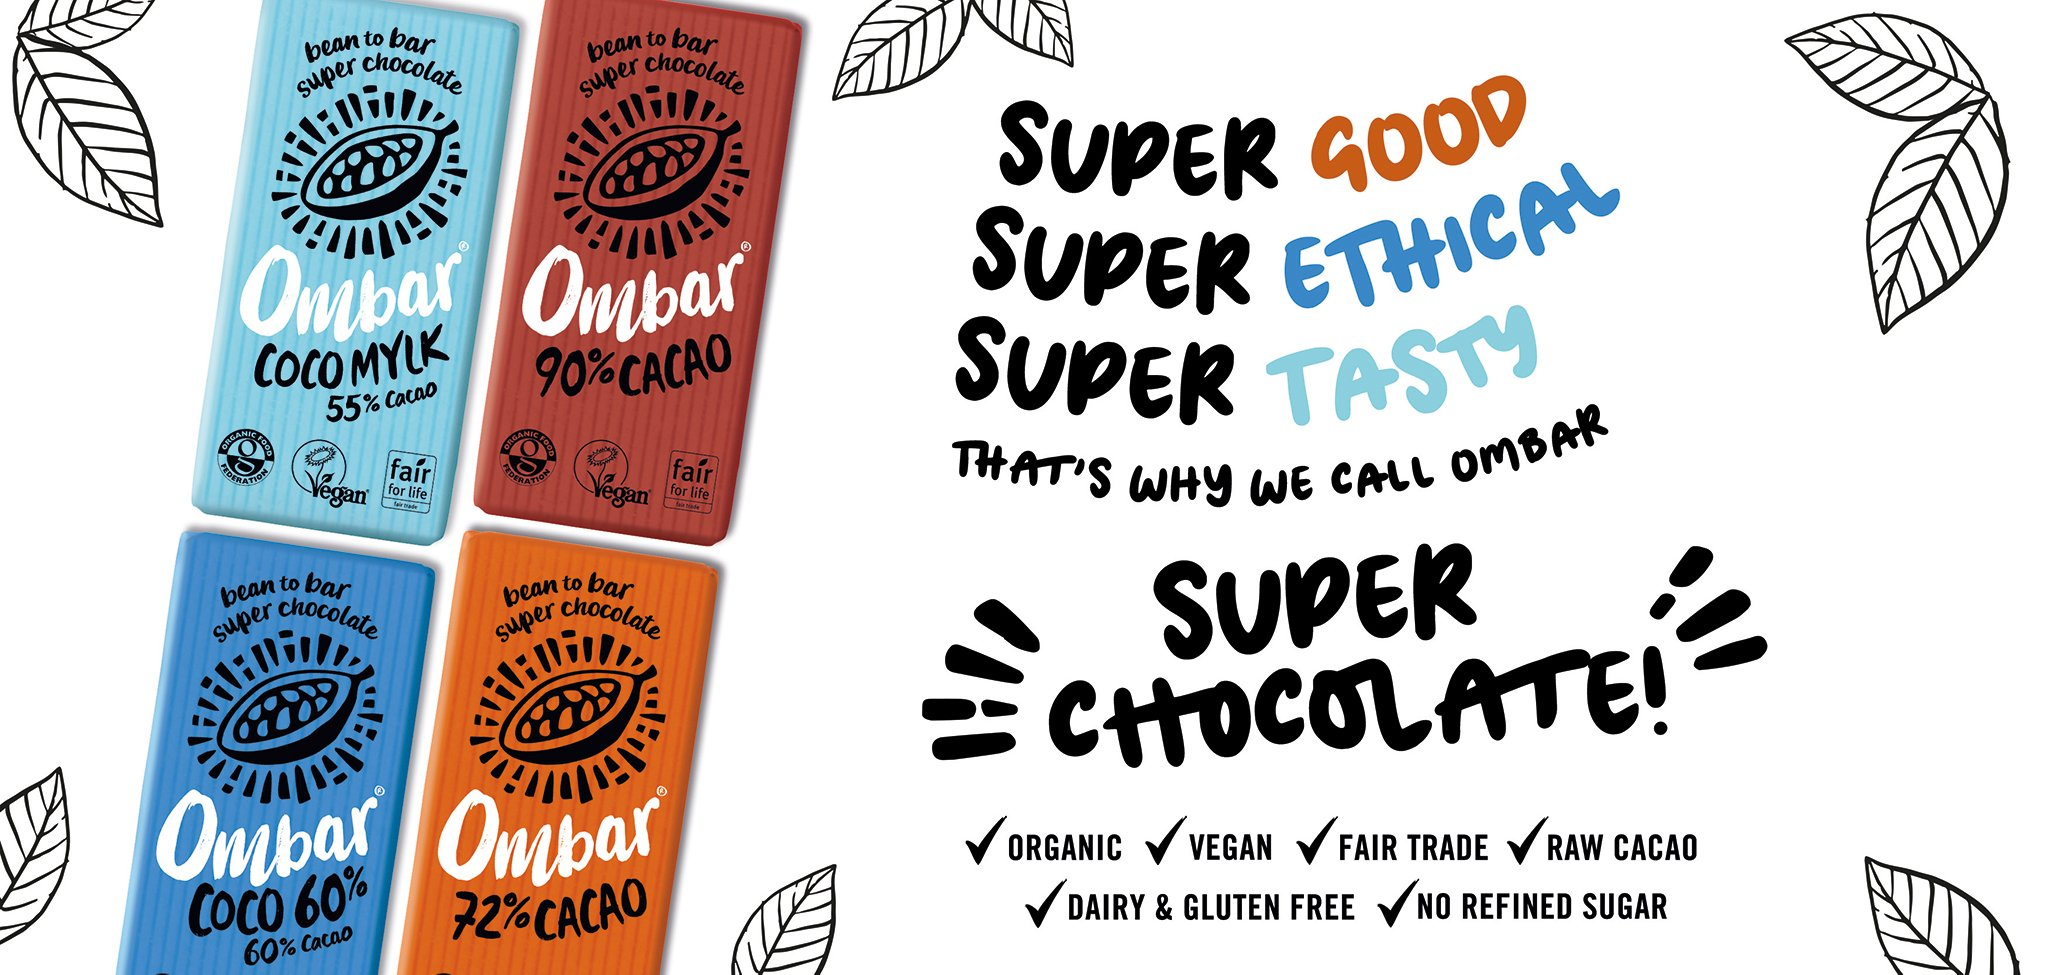 Super good, super ethical, super tasty, super chocolate